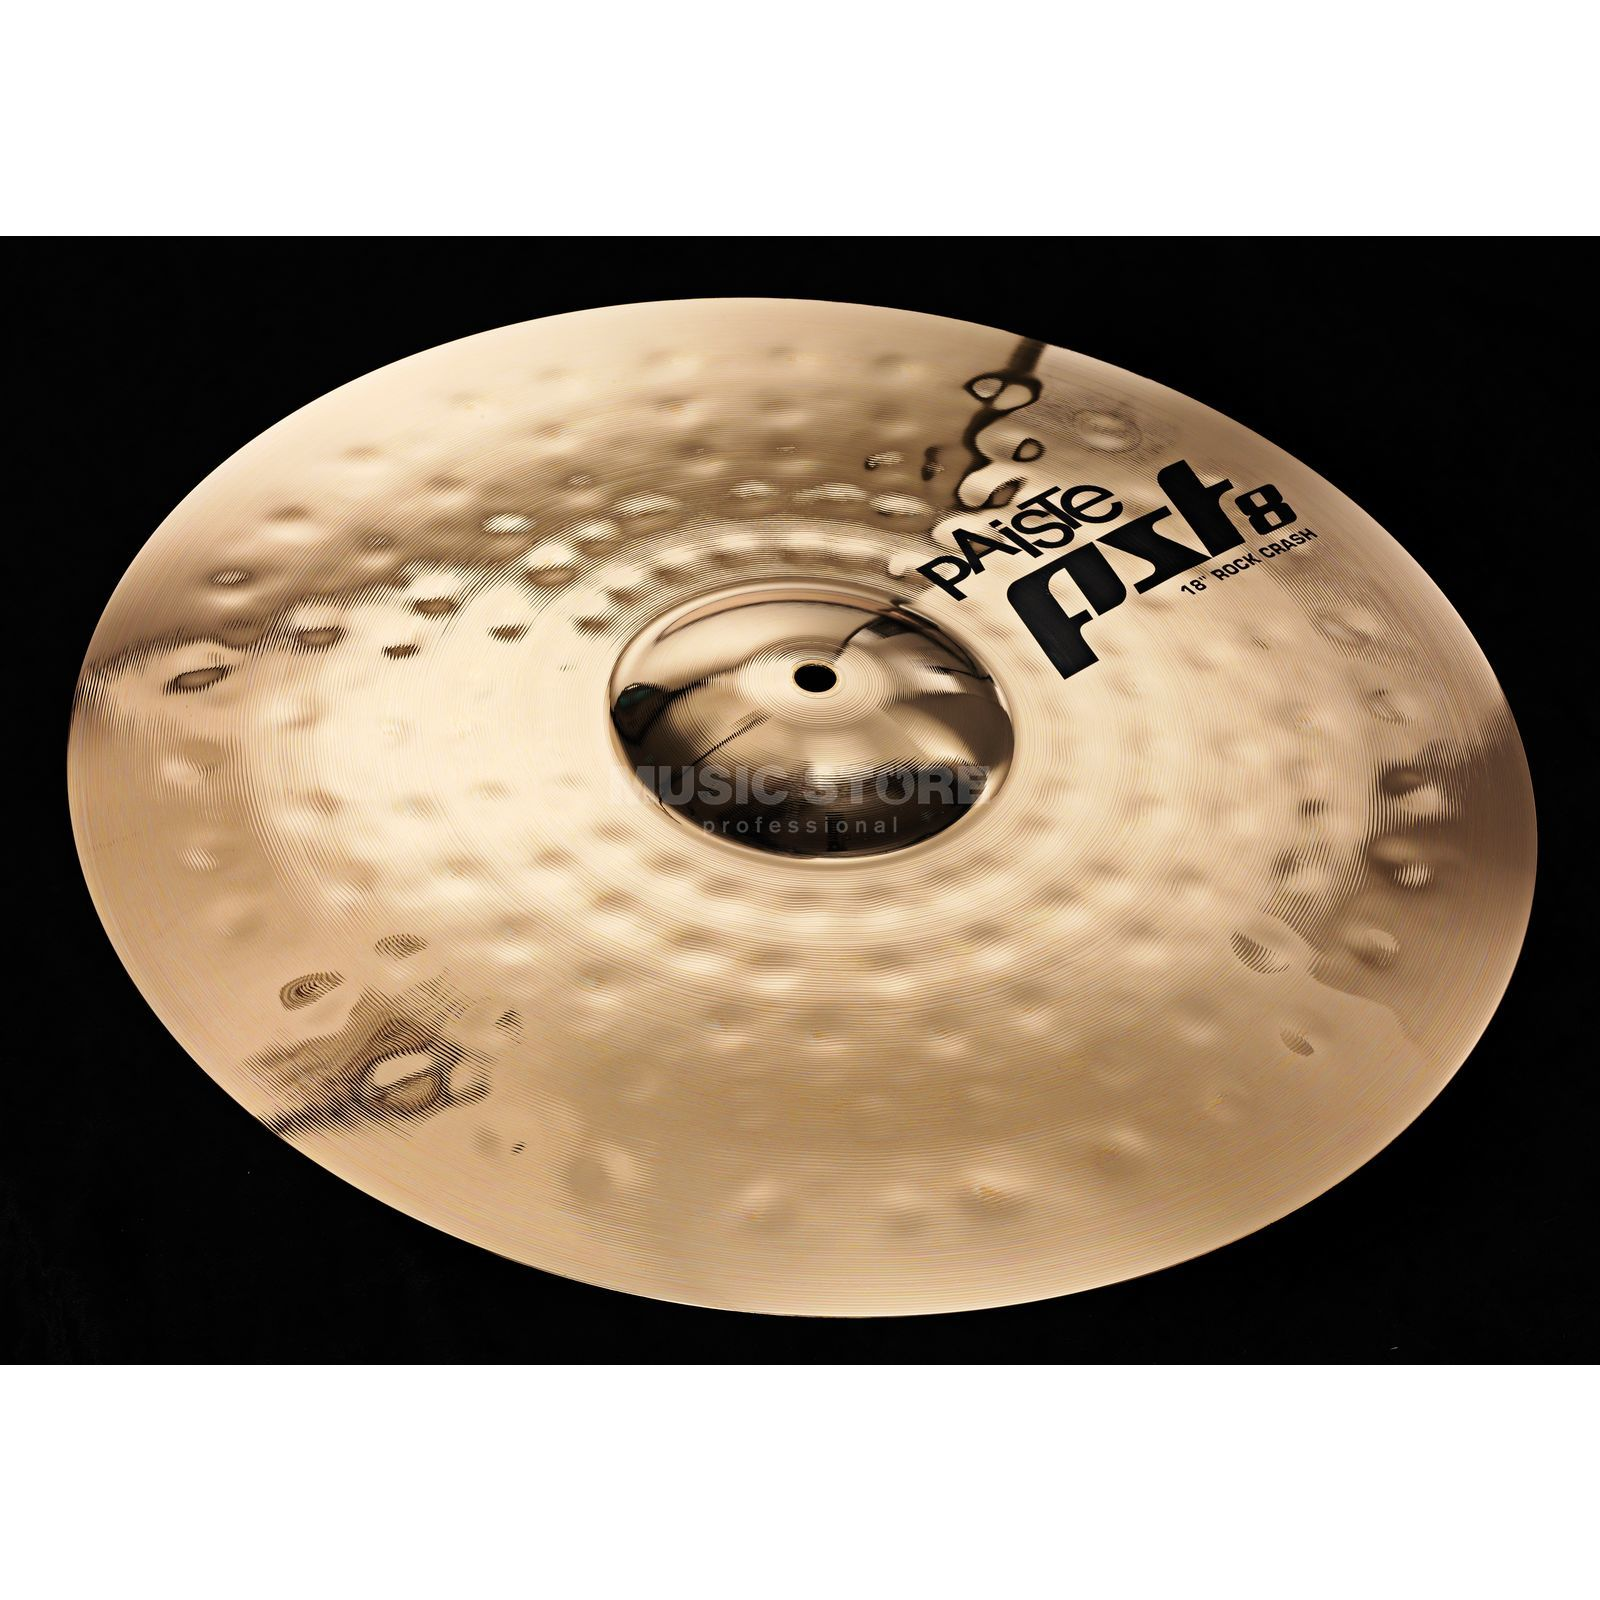 "Paiste PST8 Rock Crash 18"", Reflector Finish Produktbild"